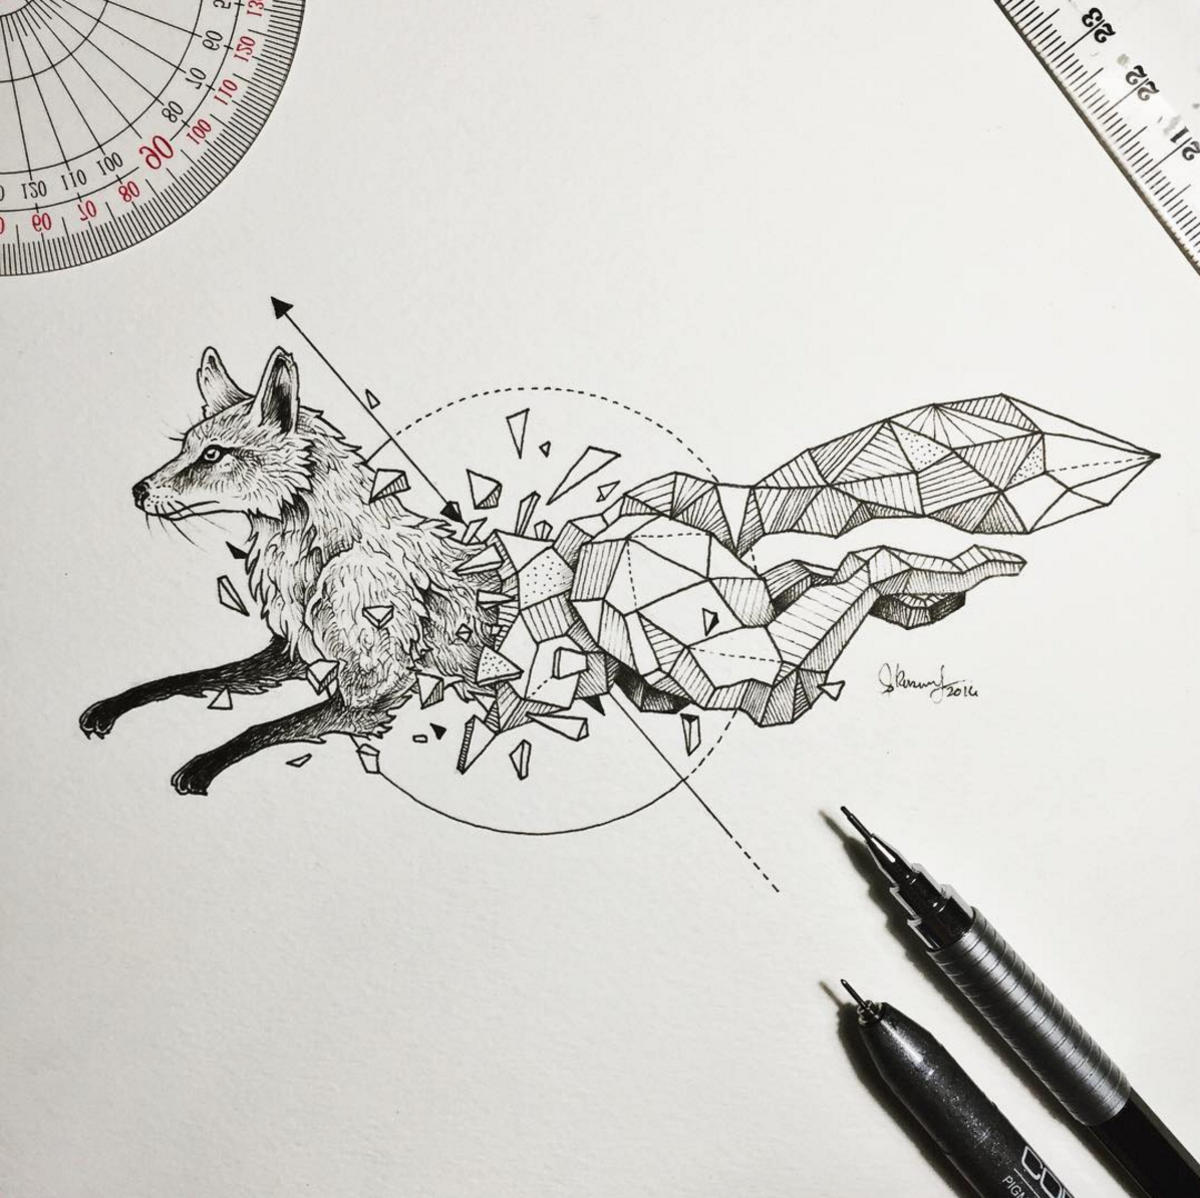 awesome intricate drawings fuse animals and geometric shapes | idk